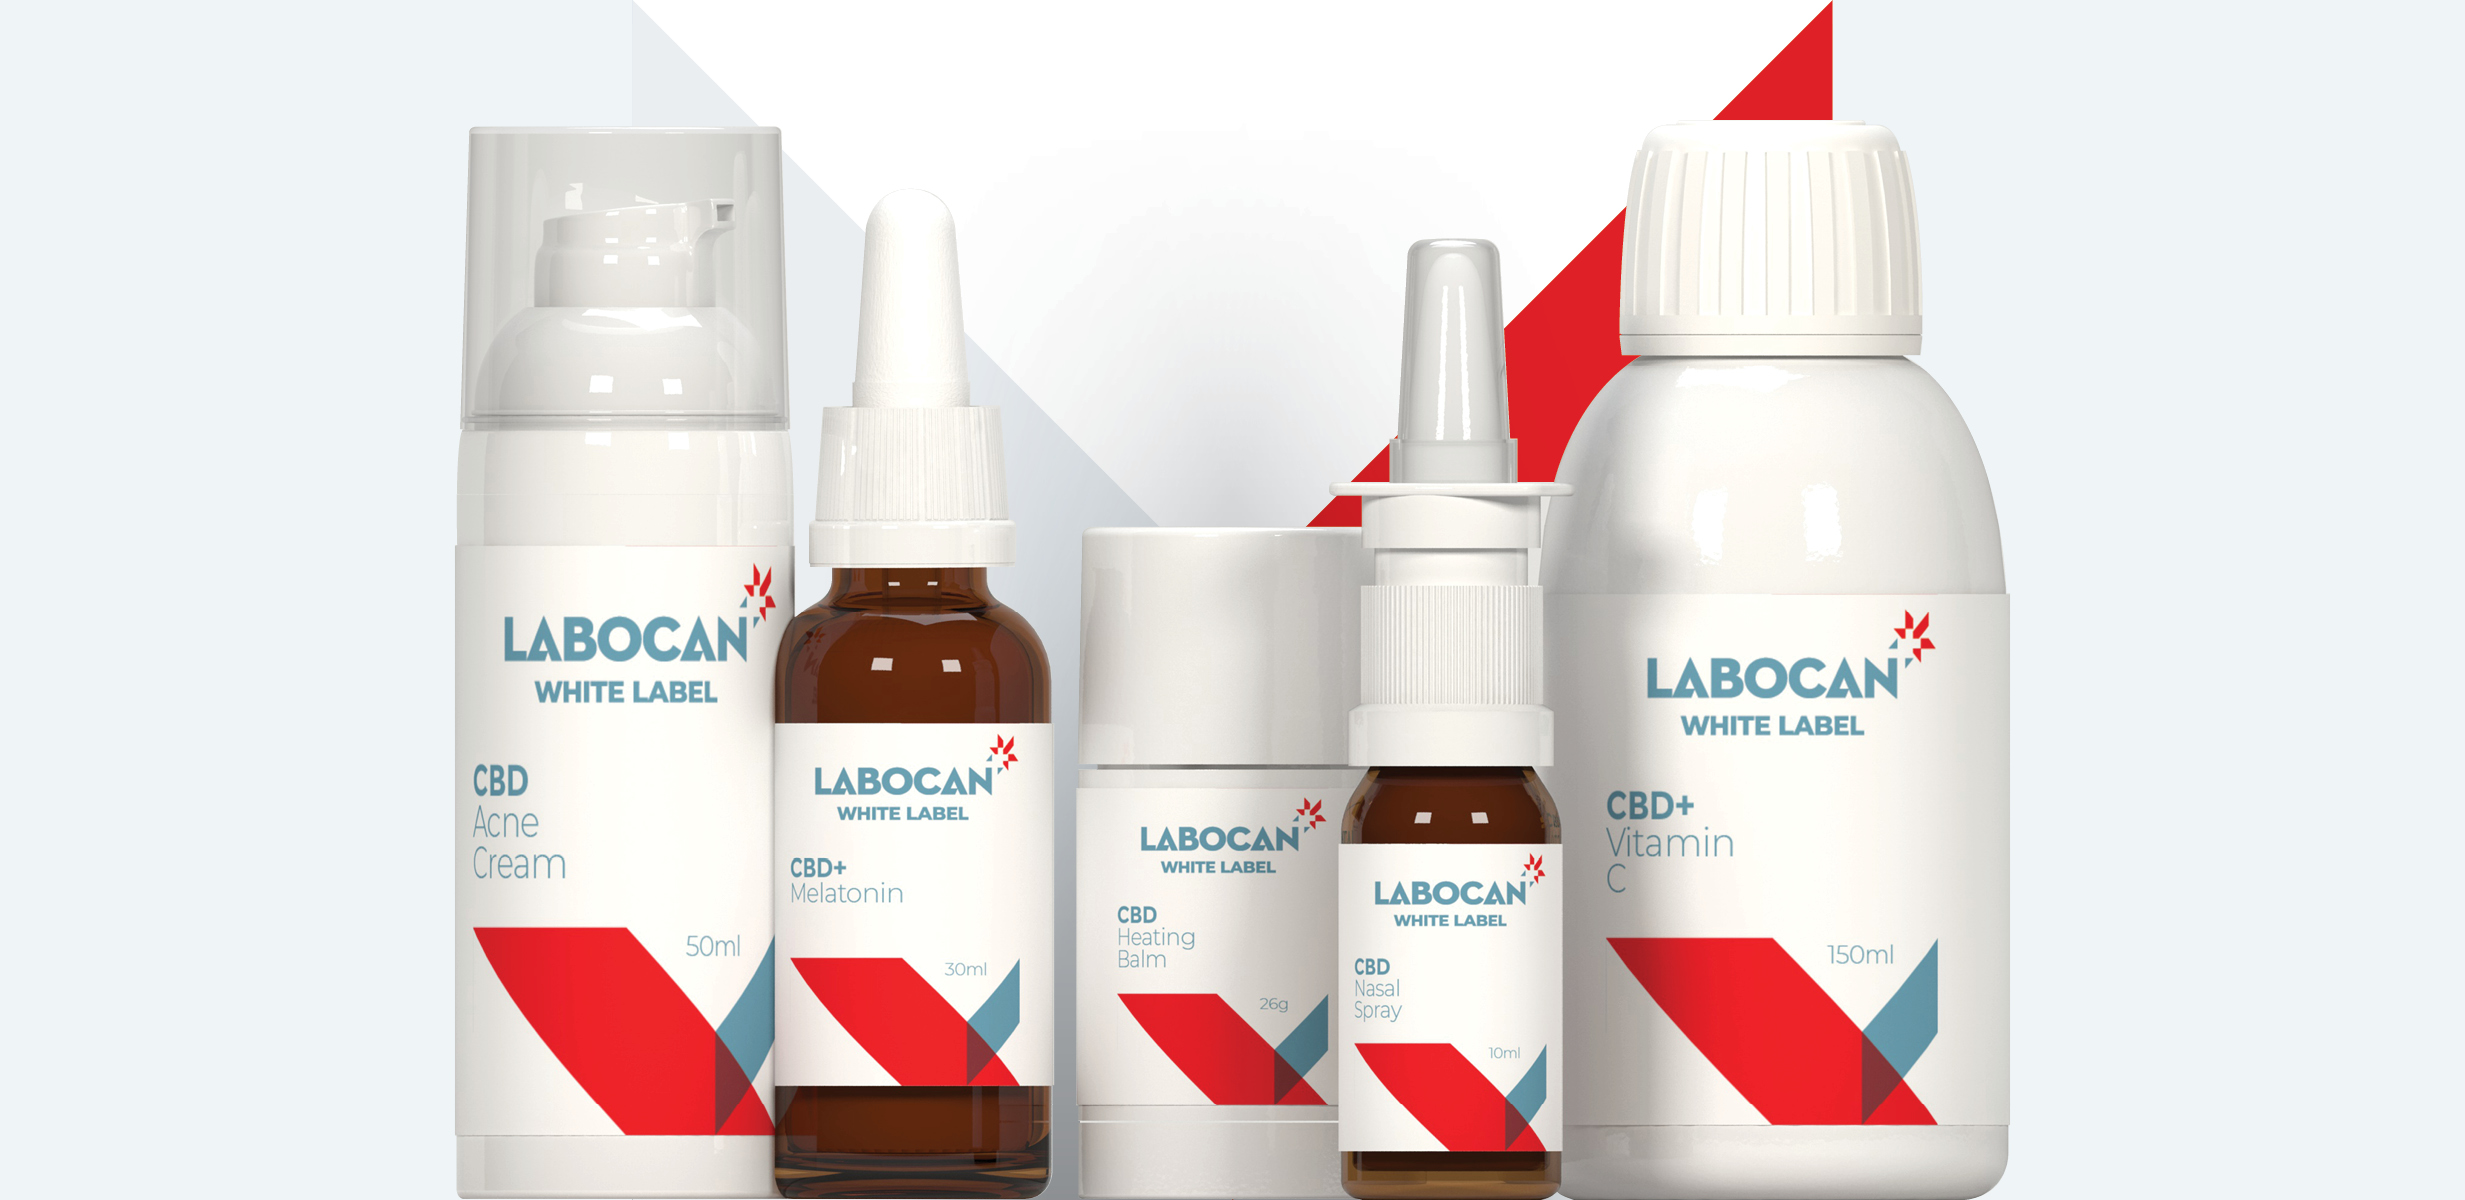 Labocan White label CBD supplements with vitamins